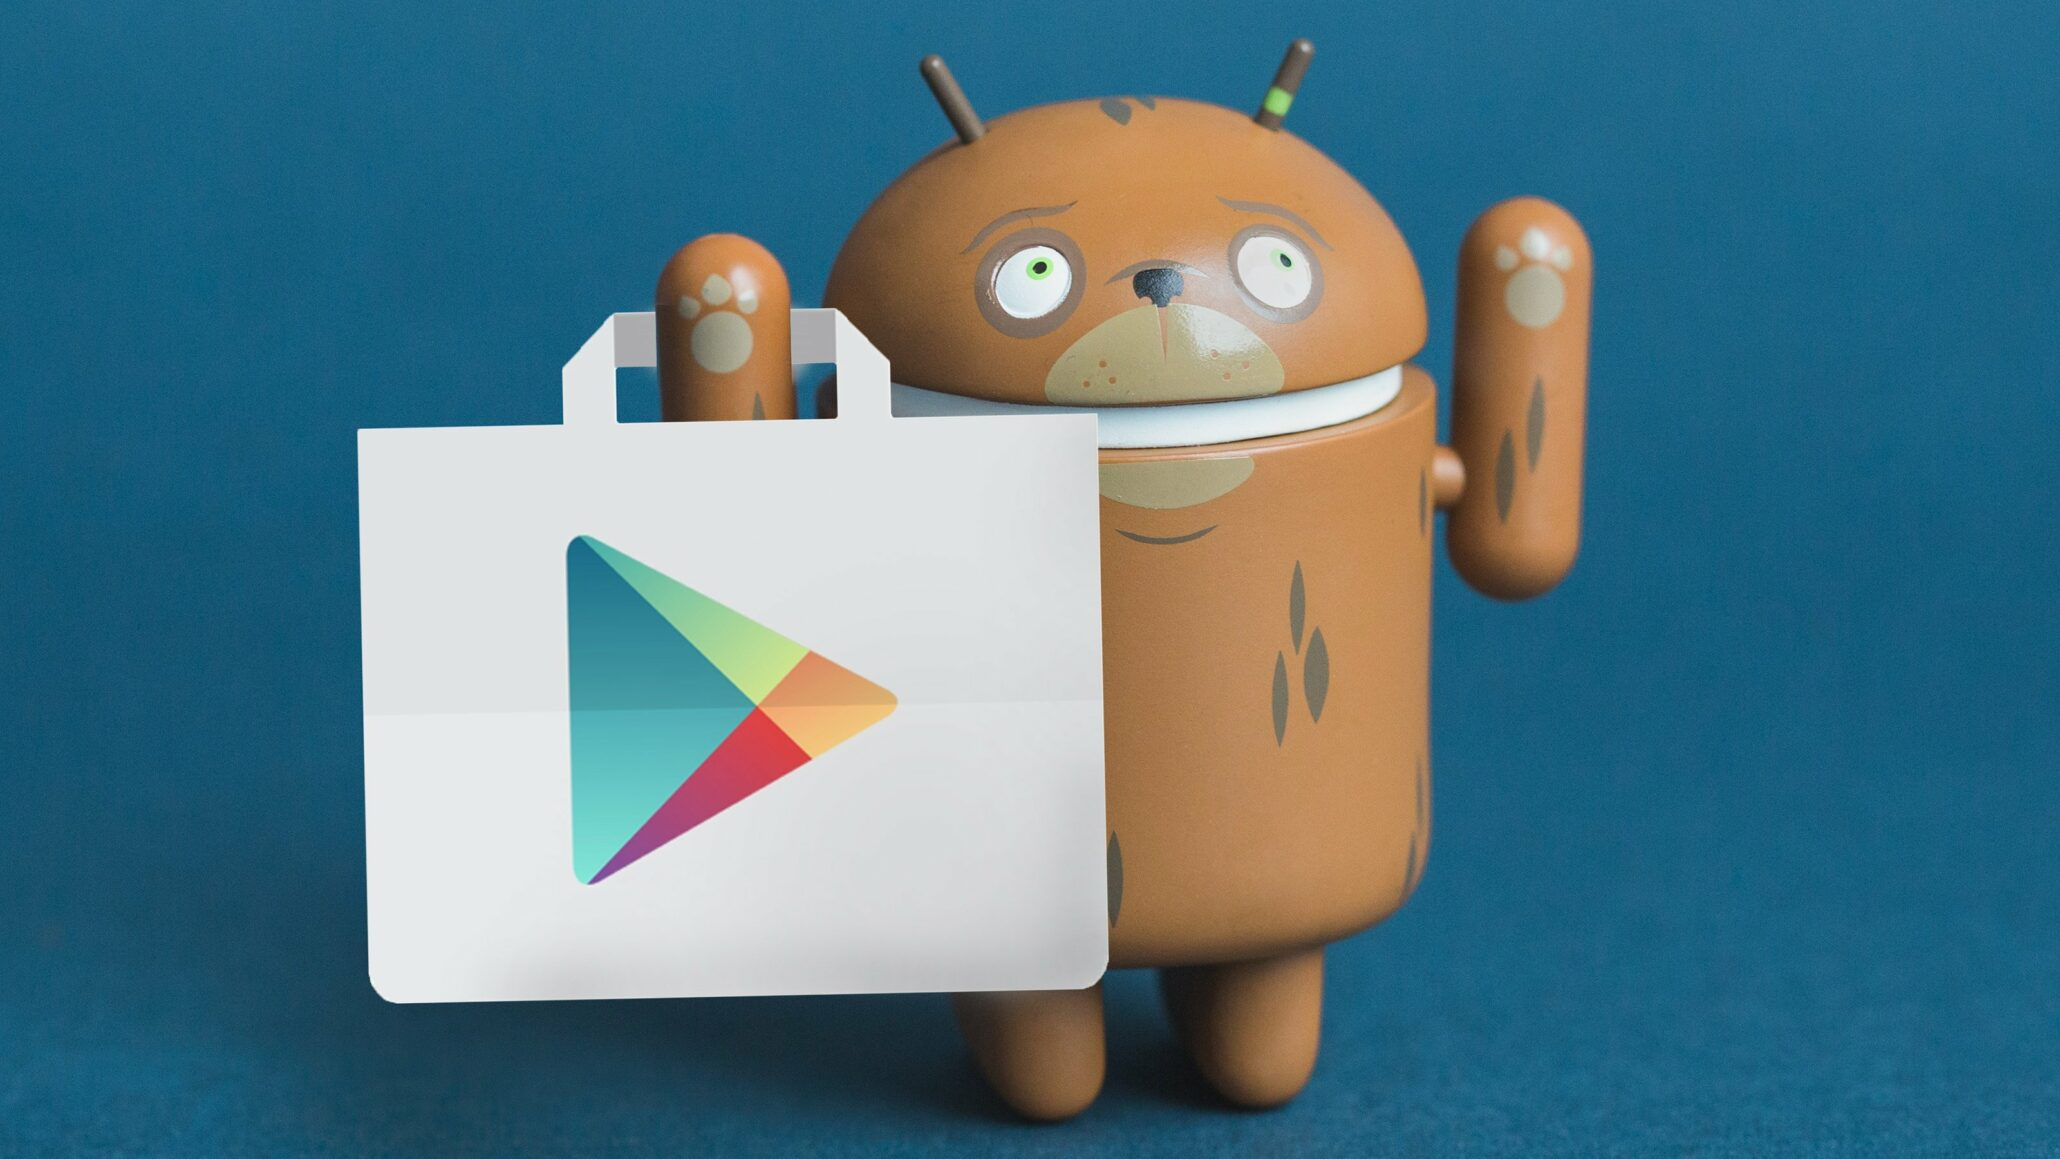 google play store old version apk free download for android mobile